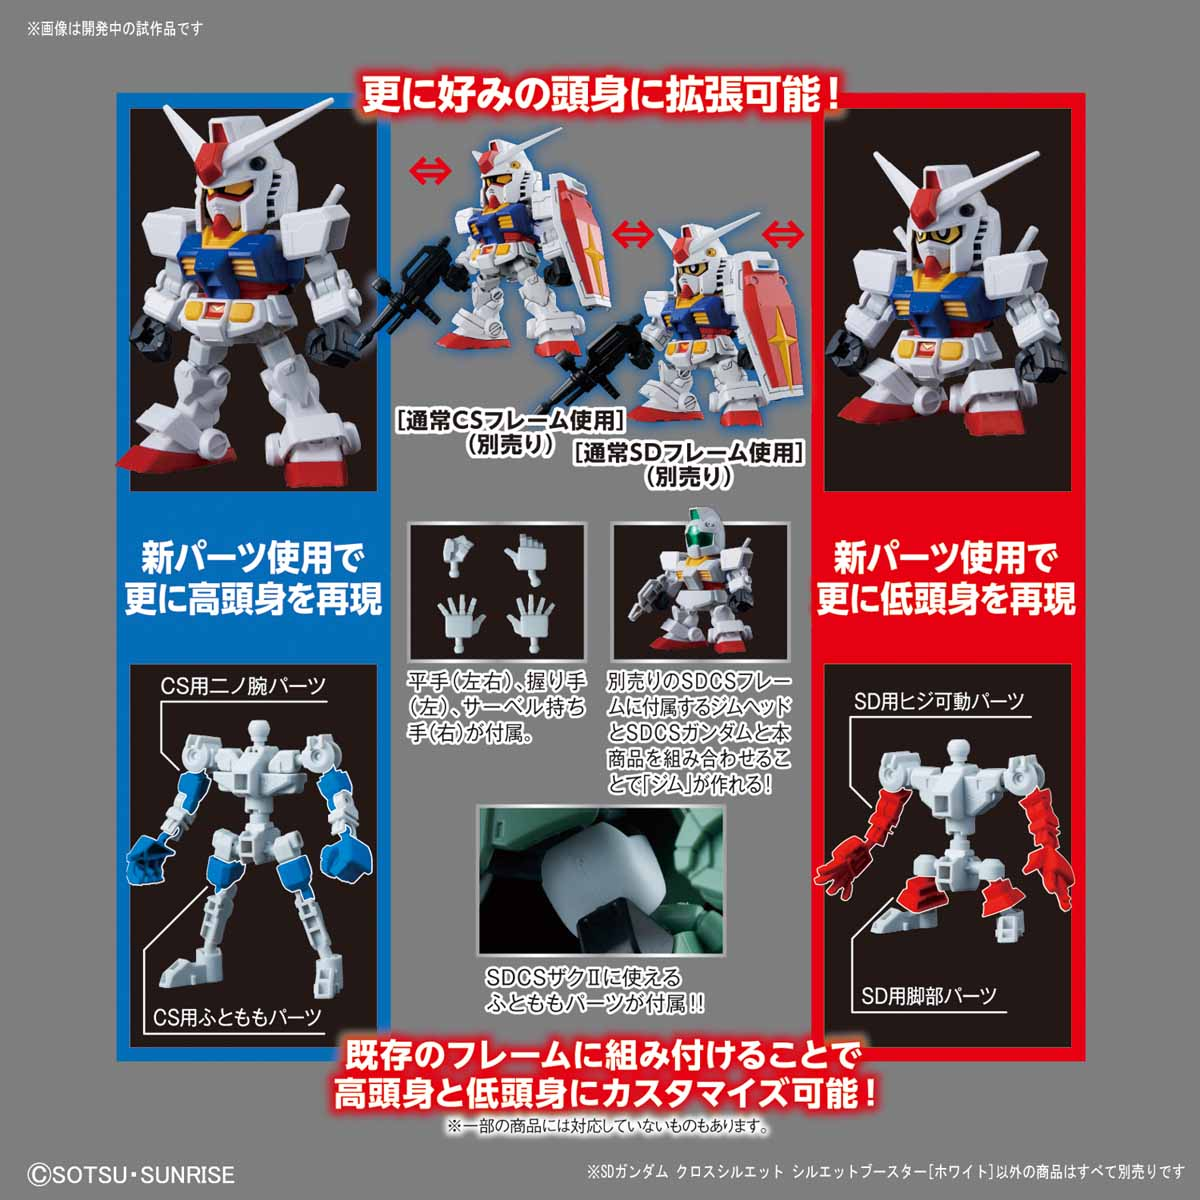 sdcs-silhouette-booster-white (7)